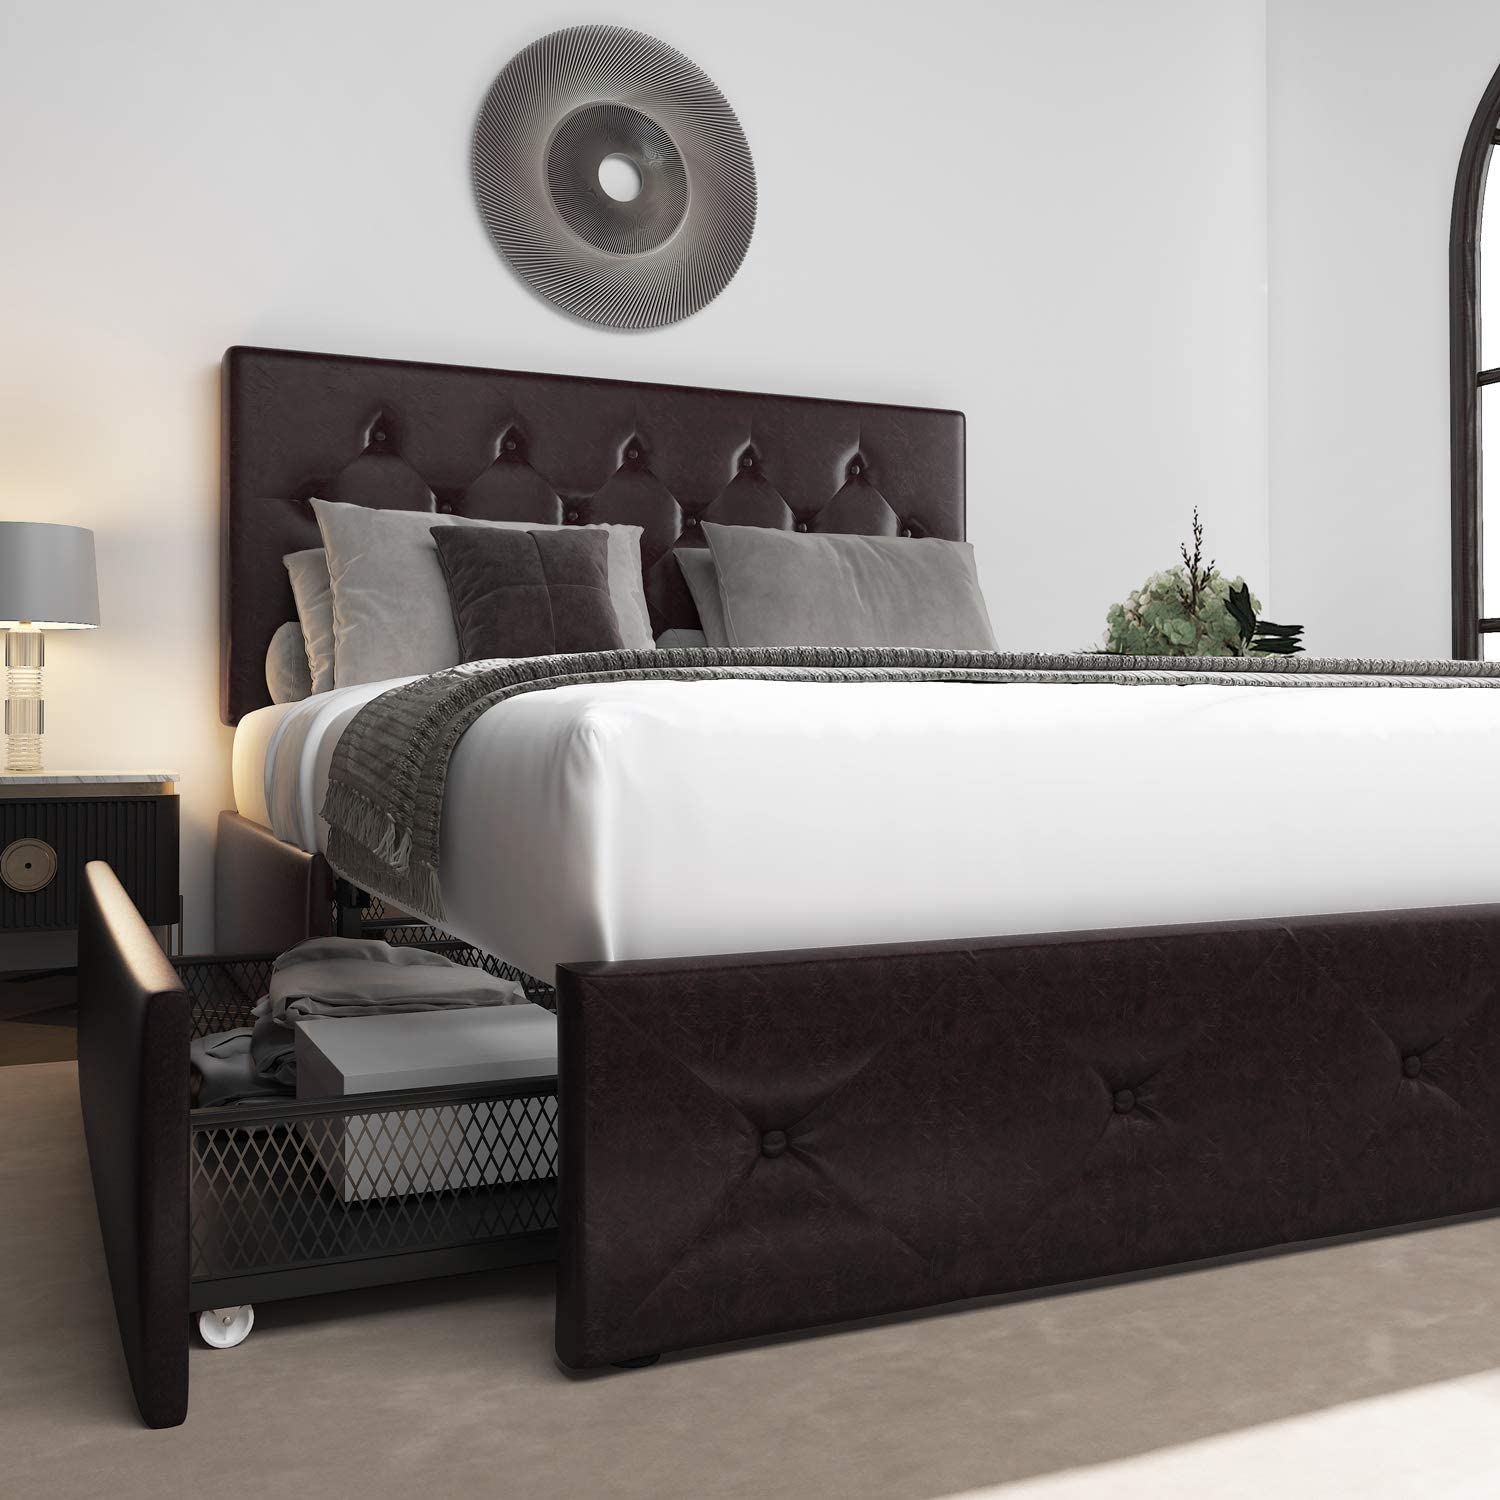 Allewie Queen Size Platform Bed Frame with 4 Drawers and Headboard, Diamond Stitched Button Tufted Faux Leather Upholstered Mattress Foundation with Storage, Black-Brown